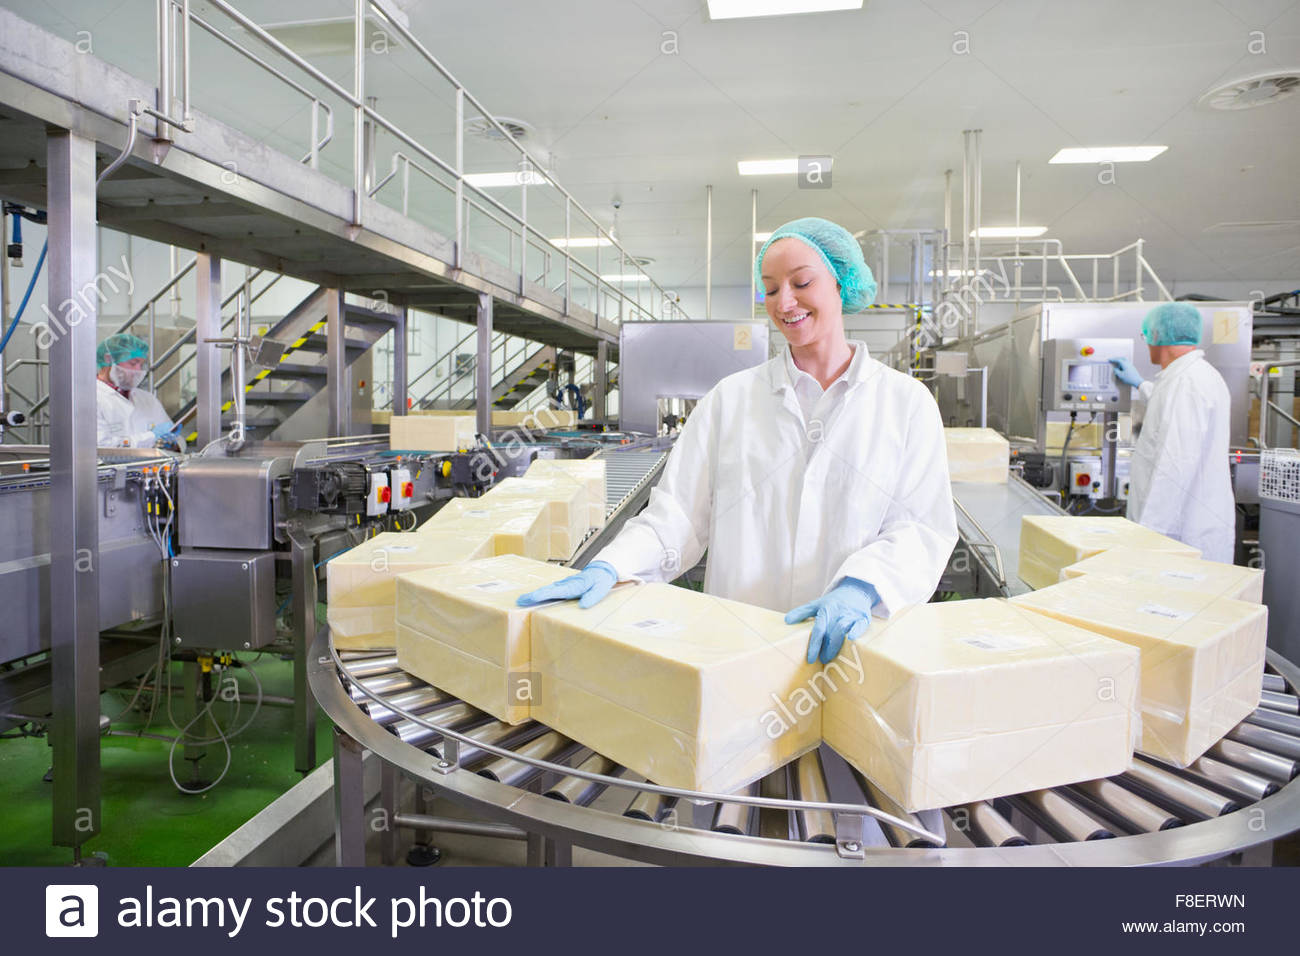 Worker with large blocks of cheese at production line in processing plant - Stock Image